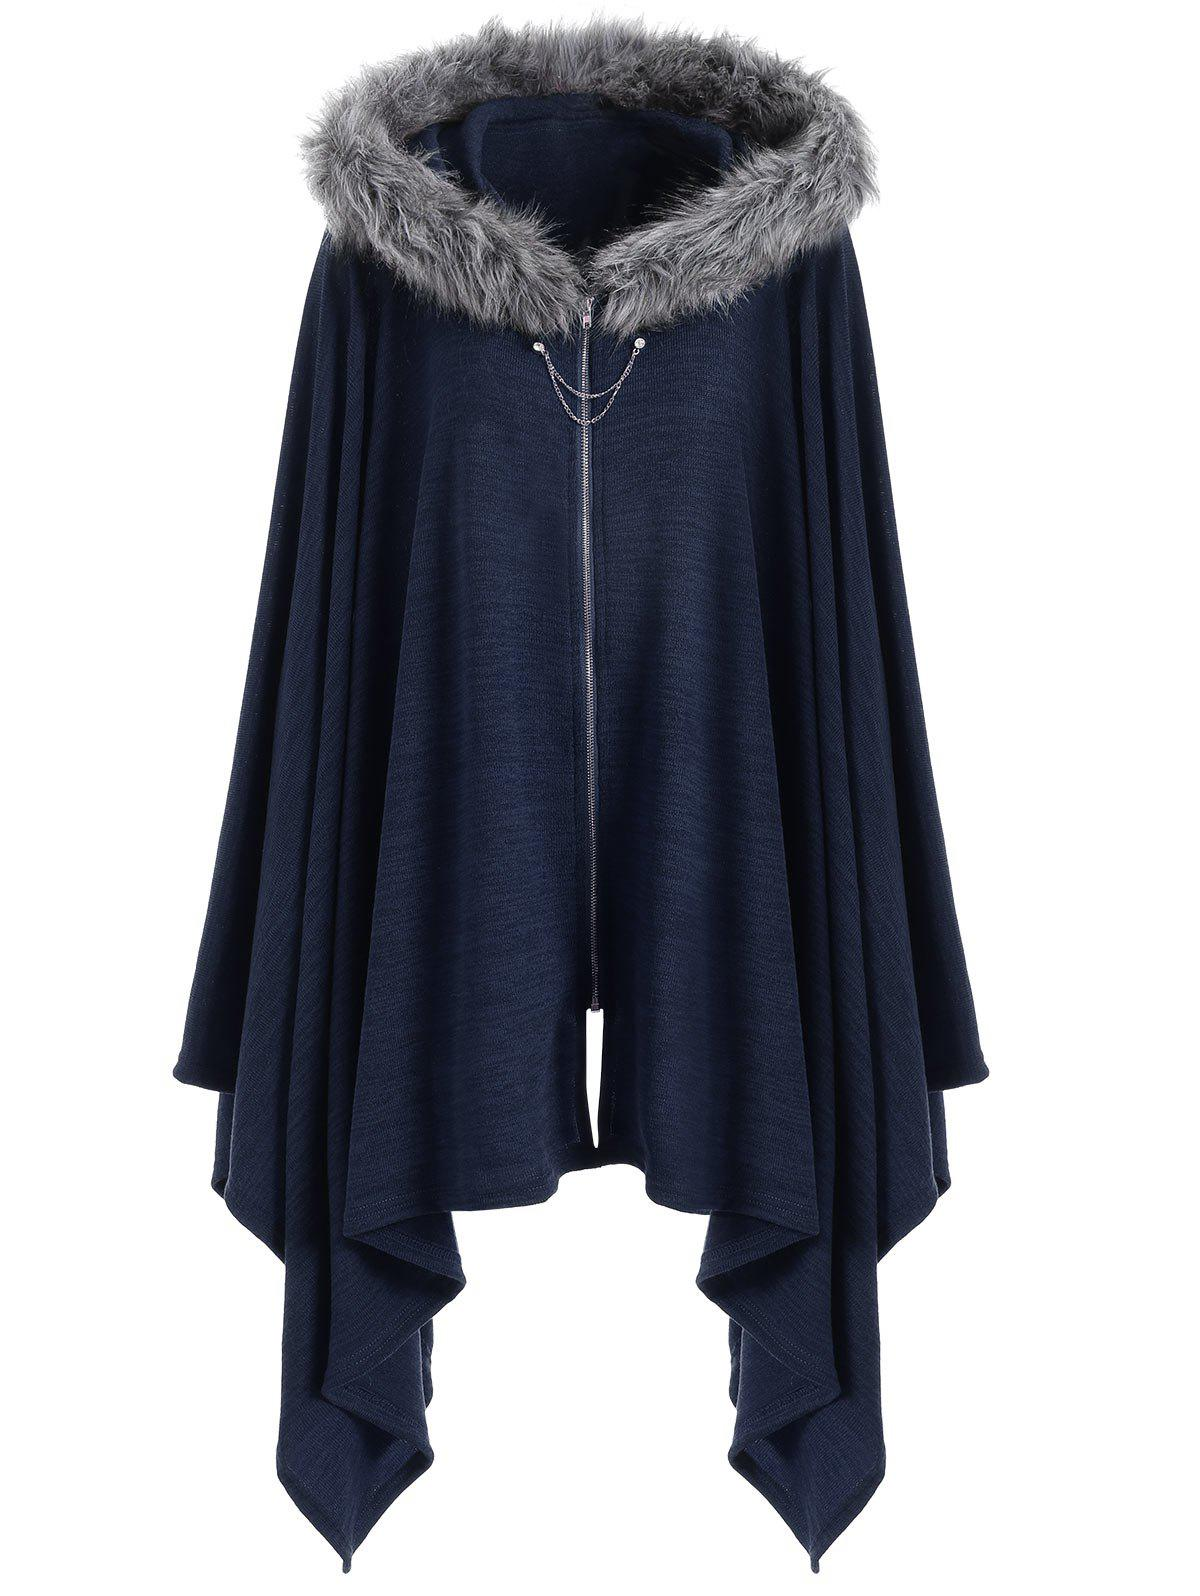 Faux Fur Insert Plus Size Asymmetric Cape CoatWOMEN<br><br>Size: 3XL; Color: BLUE; Clothes Type: Others; Material: Polyester,Spandex; Type: Wide-waisted; Shirt Length: Regular; Sleeve Length: Full; Collar: Hooded; Pattern Type: Solid; Style: Fashion; Season: Fall,Winter; Weight: 0.4700kg; Package Contents: 1 x Coat;